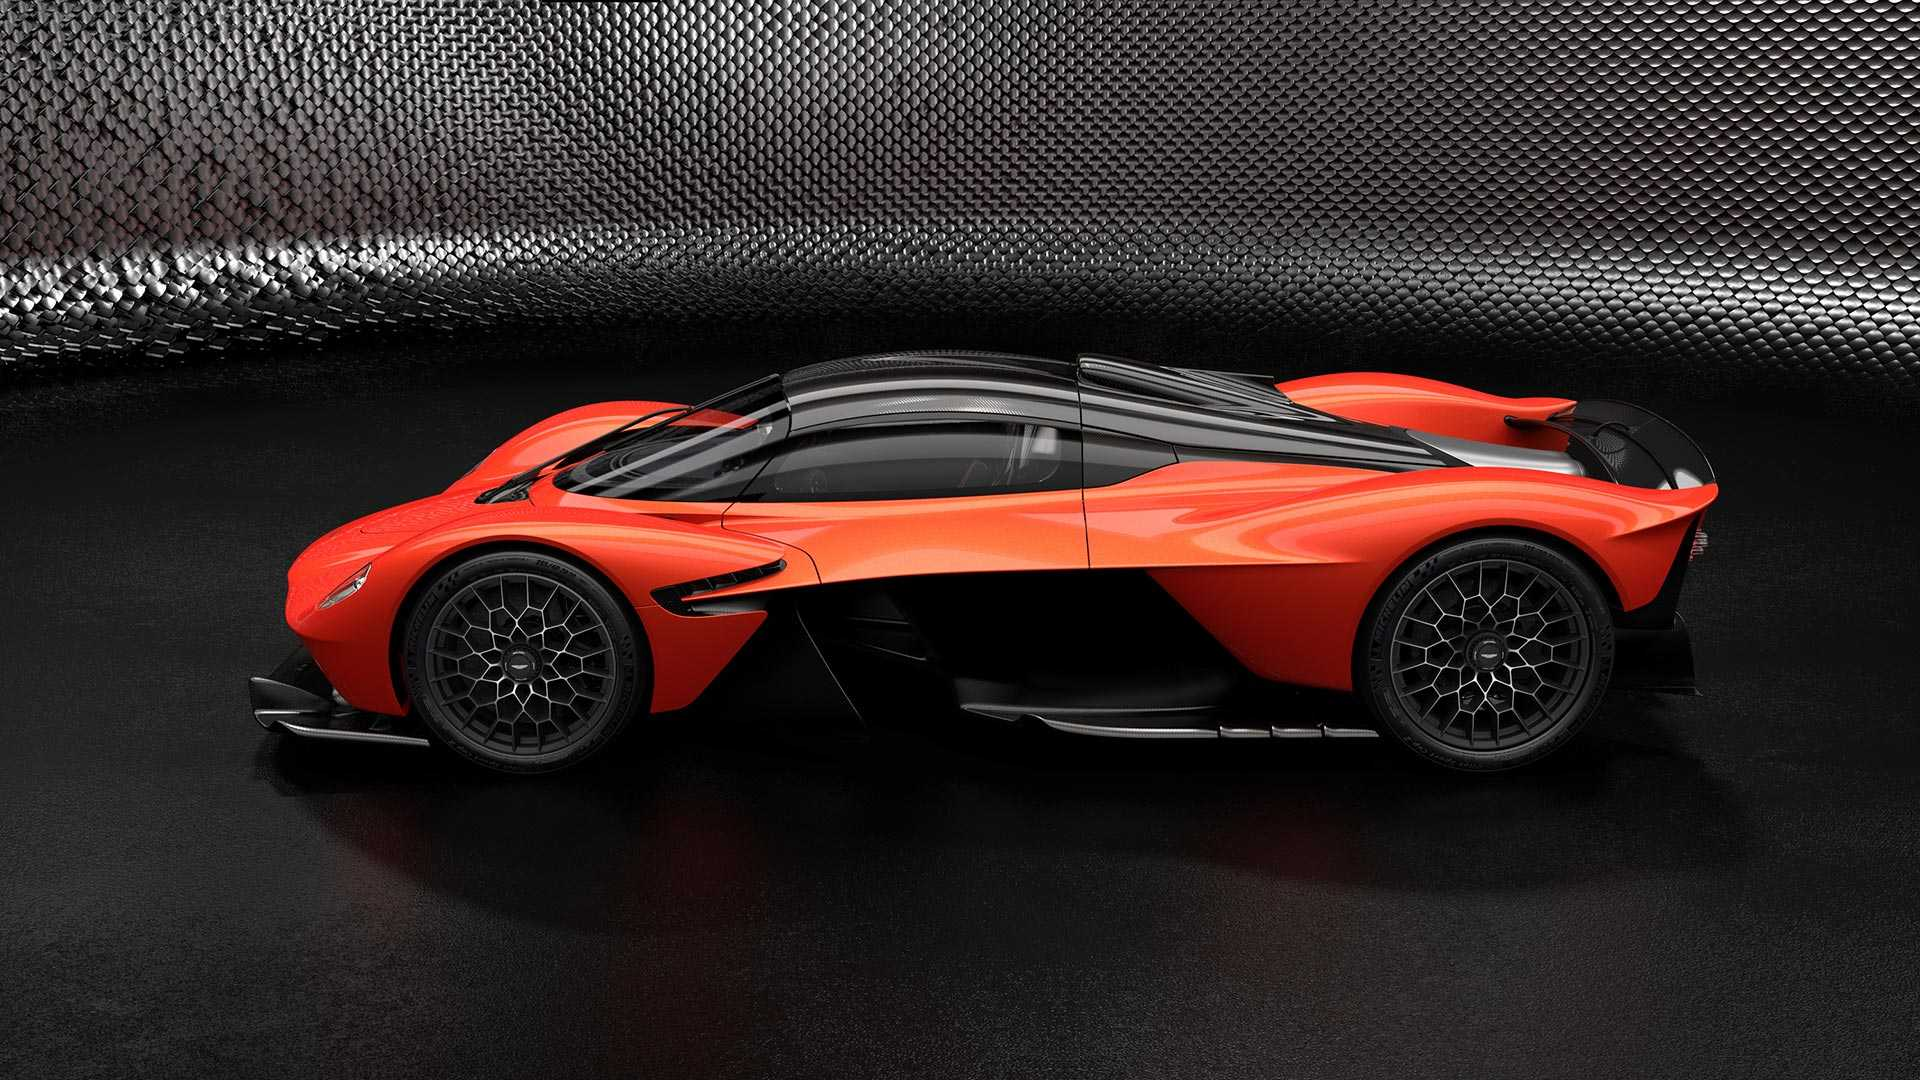 [Actualité] Aston Martin : From Britain with love - Page 5 Aston-martin-valkyrie